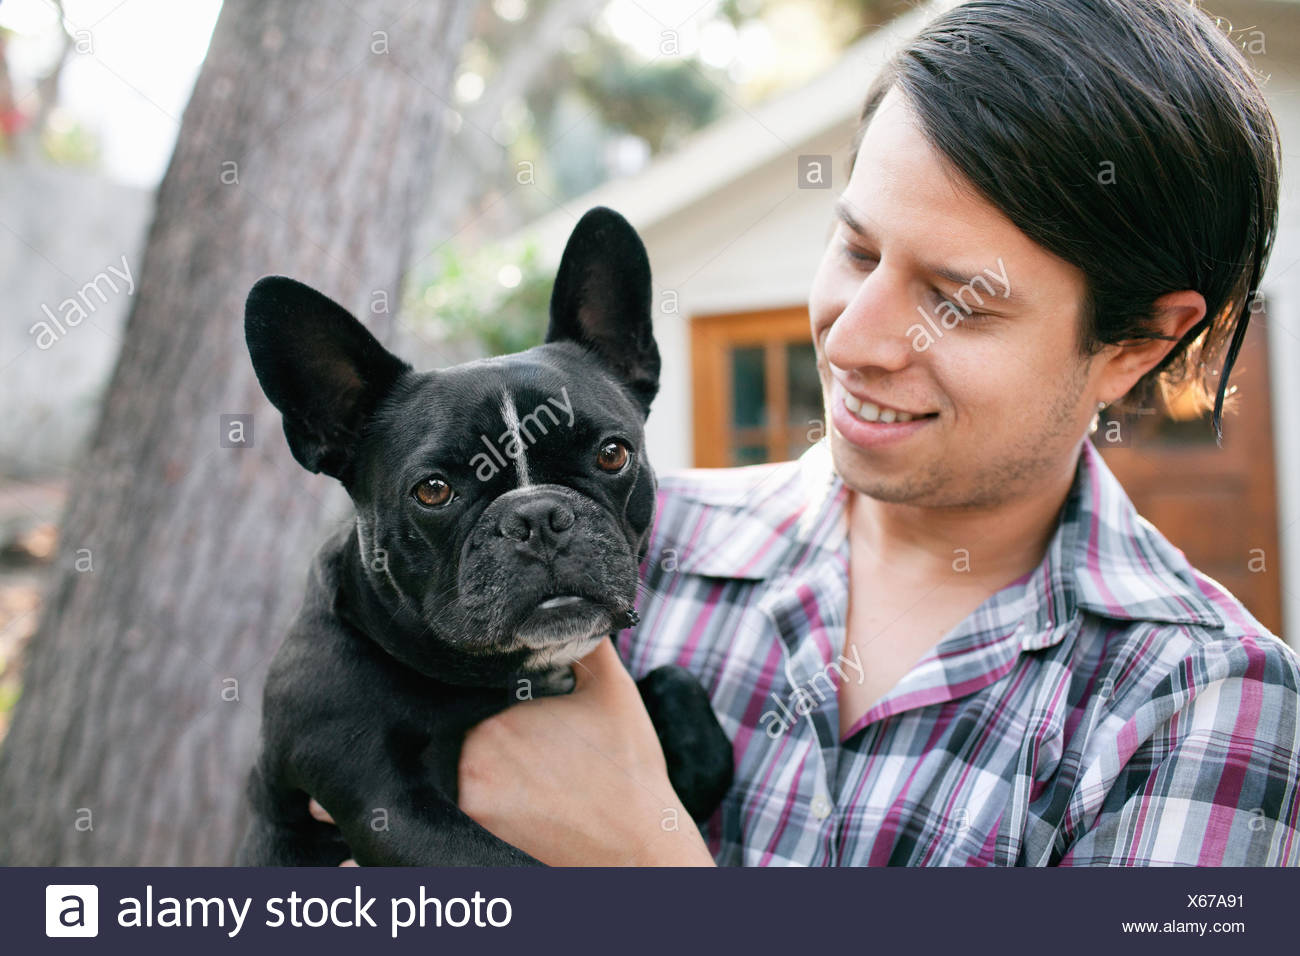 Portrait of young man carrying dog - Stock Image